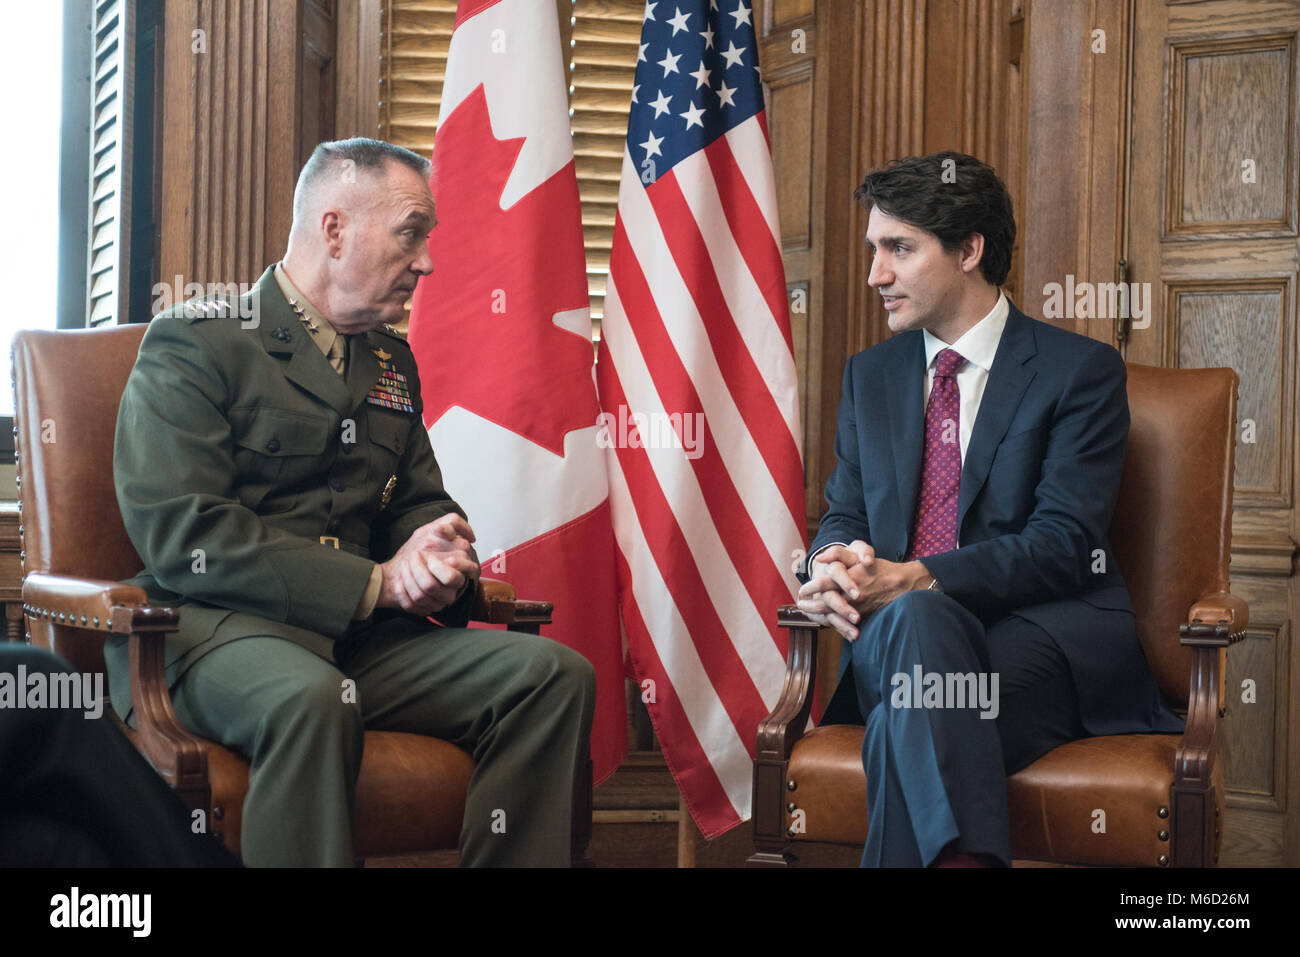 U.S. Marine Corps Gen. Joe Dunford, chairman of the Joint Chiefs of Staff,  speaks with Justin Trudeau, Prime Minister of Canada,  in the Canadian Parliament buildings, Ottawa, Canada, Feb. 28, 2018. Gen. Dunford was in Ottawa for meetings with senior Canadian officials on the ongoing evolution of the North American Aerospace Defense Command. (DoD Photo by U.S. Army Sgt. James K. McCann) Stock Photo